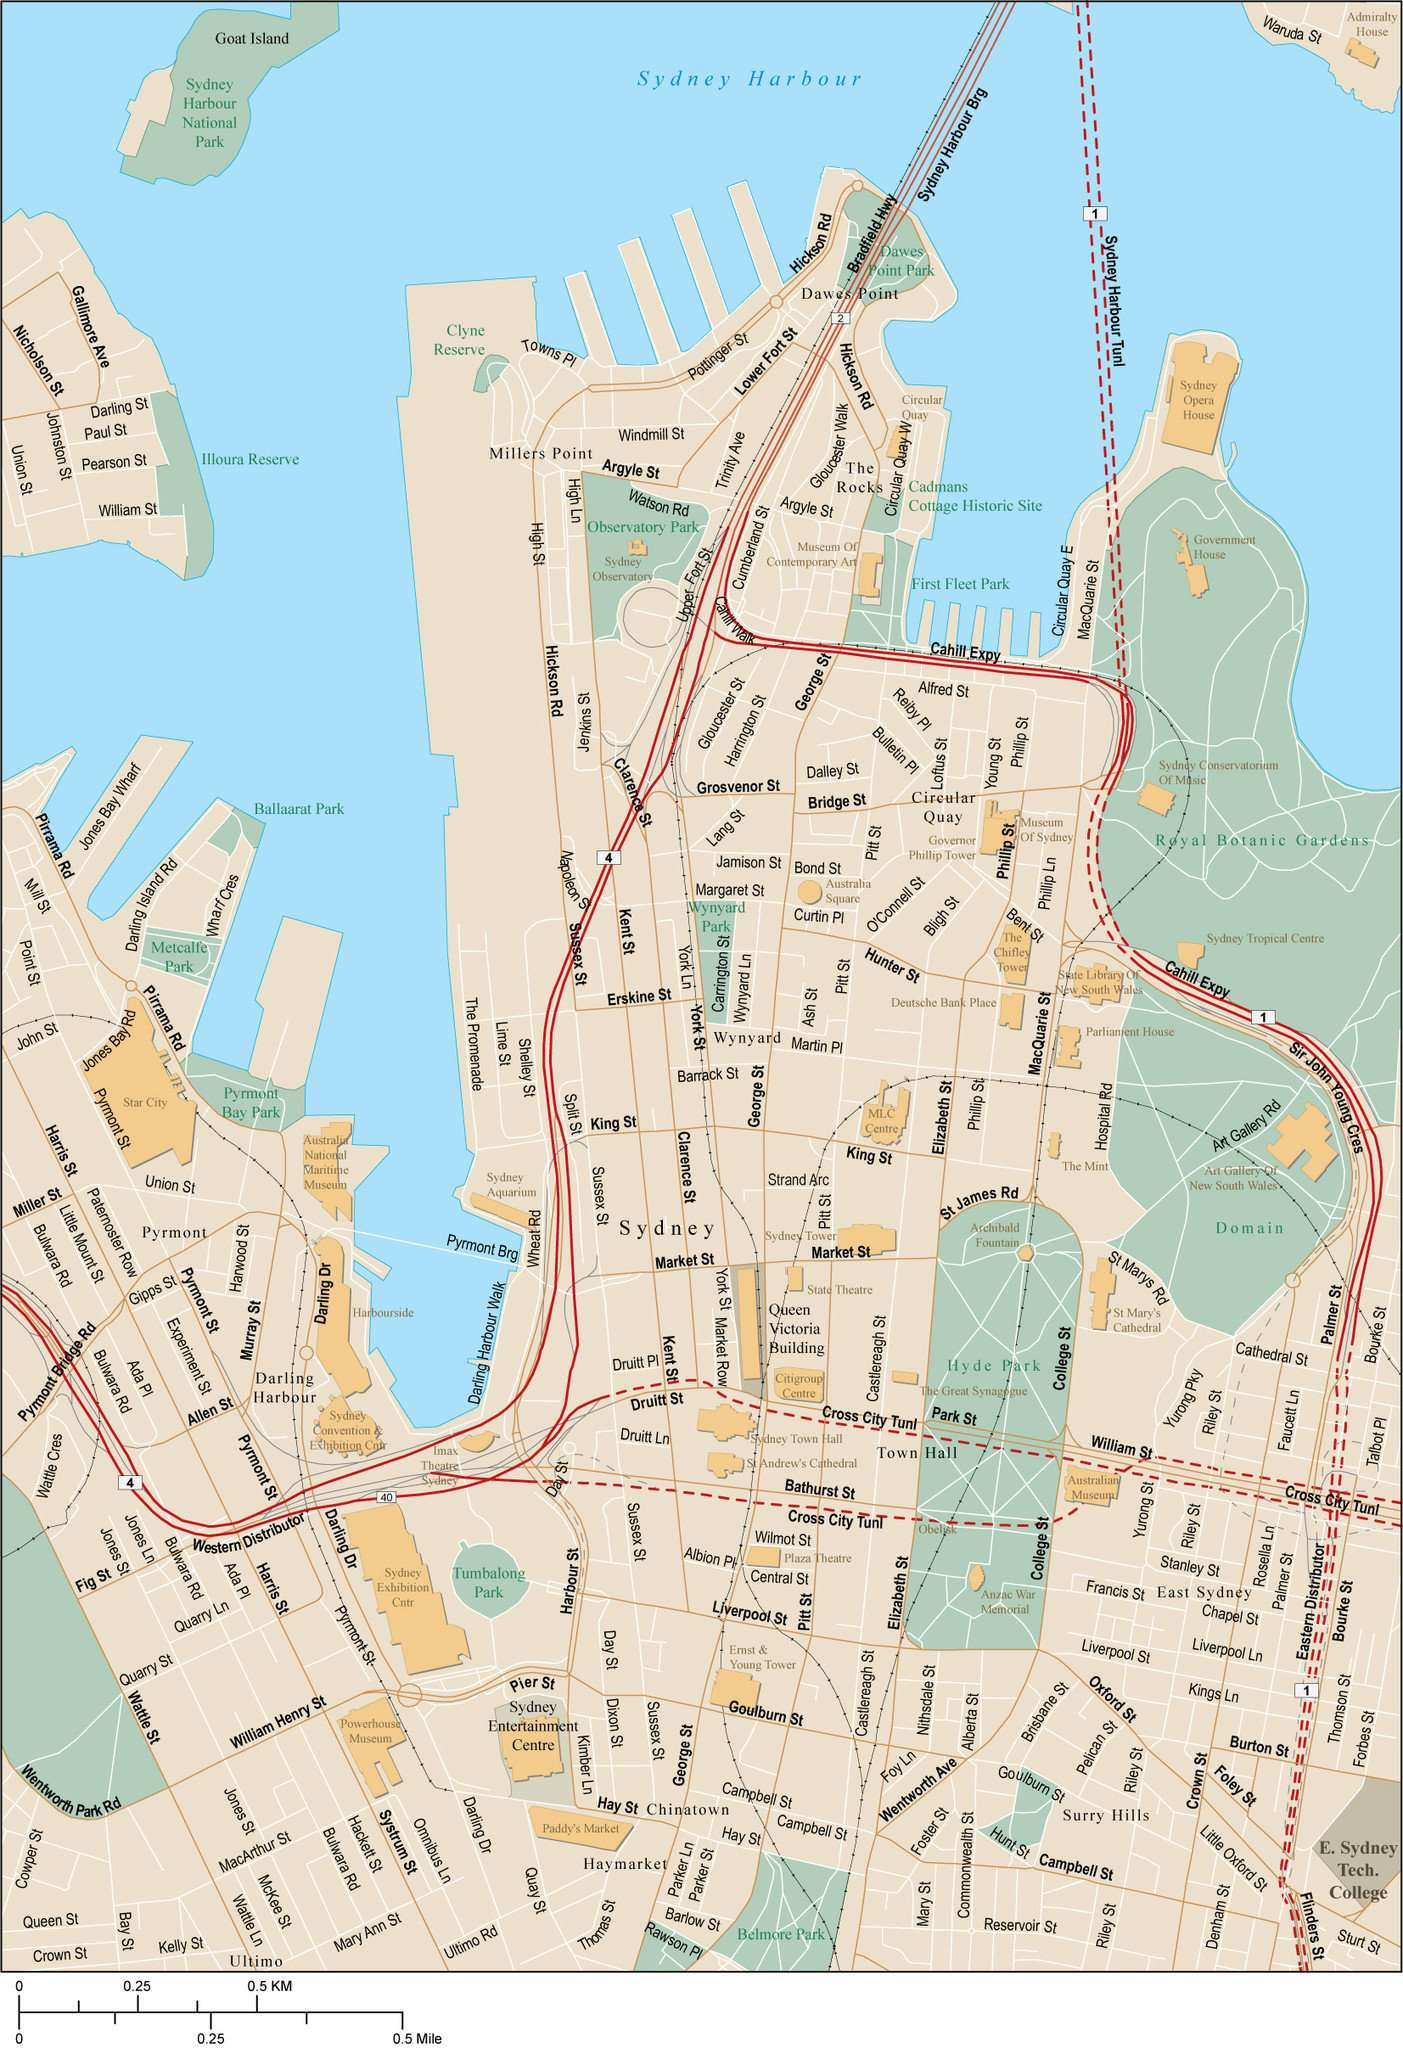 Australia Map City Names.Sydney Map With Local Streets In Adobe Illustrator Vector Format